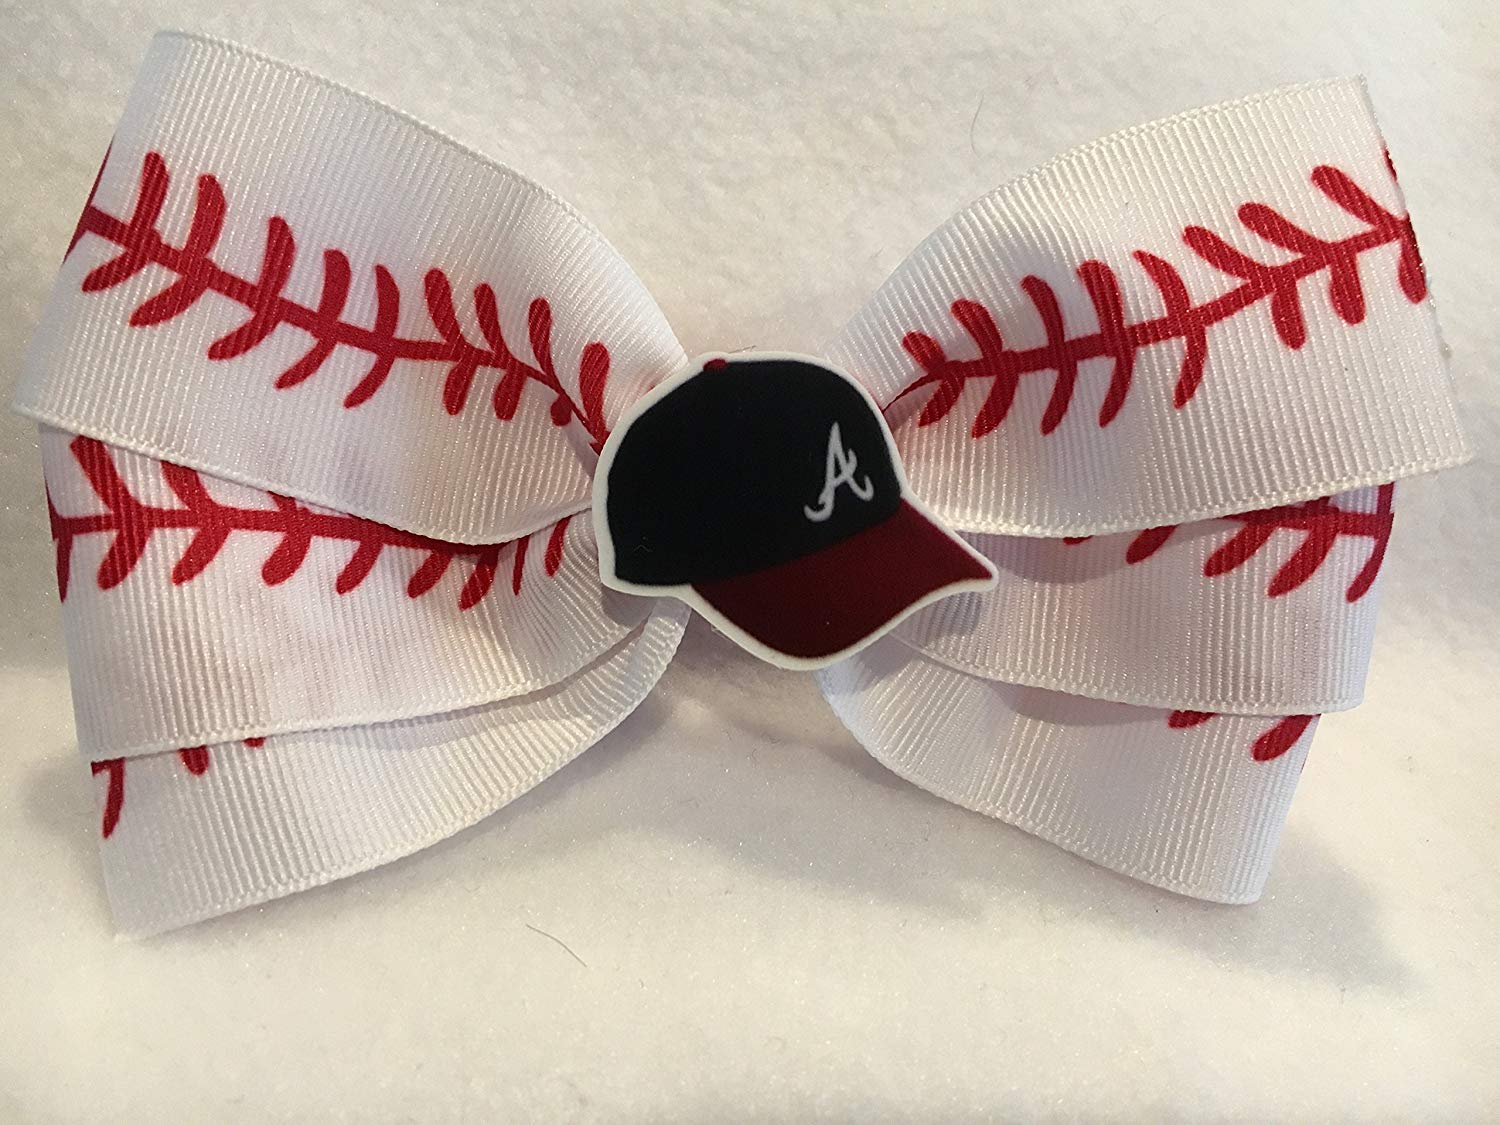 c5c7289a3152d Get Quotations · Atlanta Braves Hair Bow